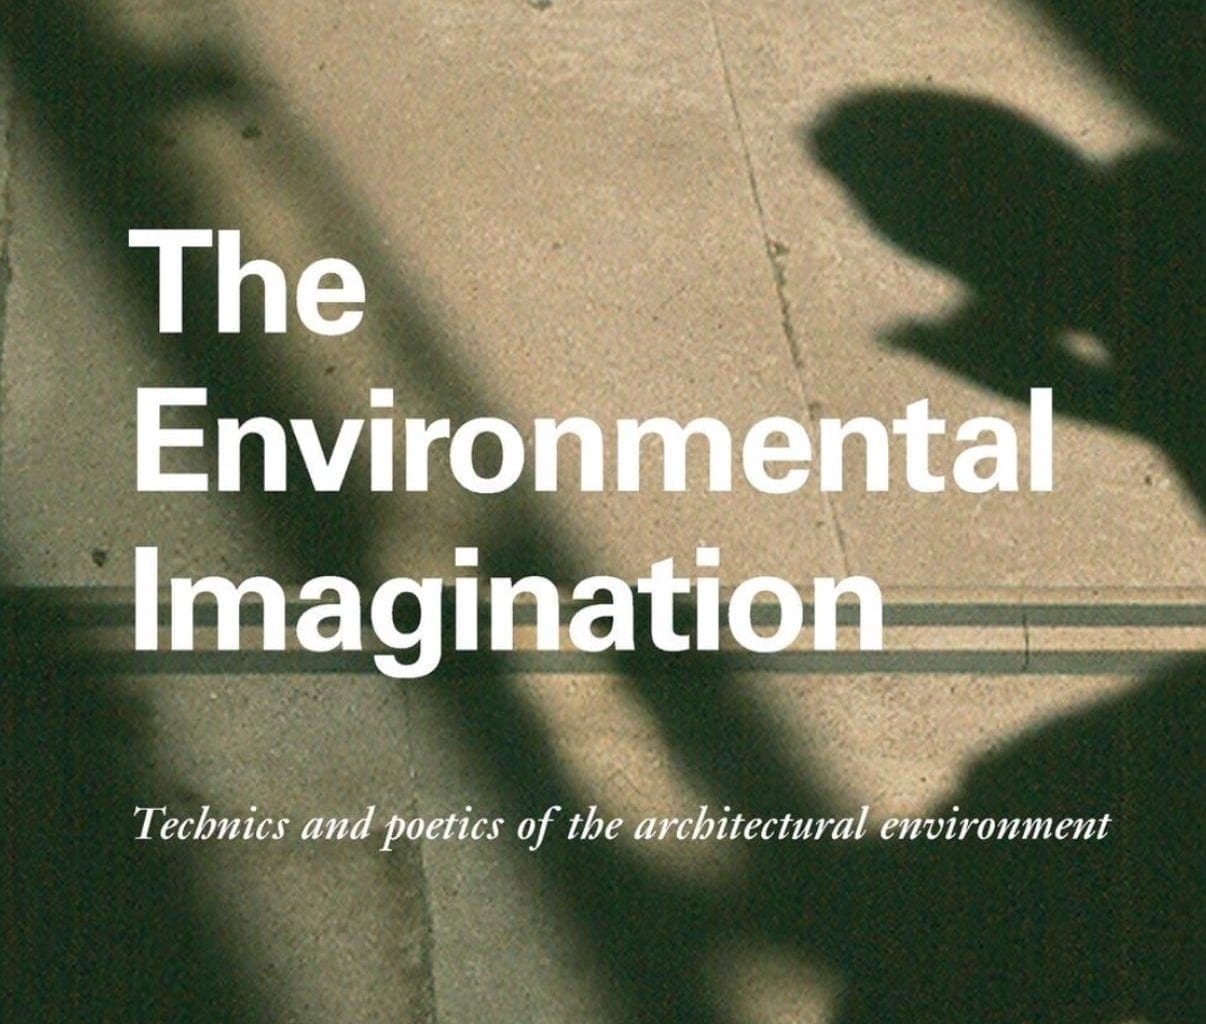 Dean Hawkes, Emeritus Professor of Architectural Design at the Welsh School of Architecture, Cardiff University and an Emeritus Fellow of Darwin College, University of Cambridge, gives a lunchtime lecture titled: The Environmental Imagination